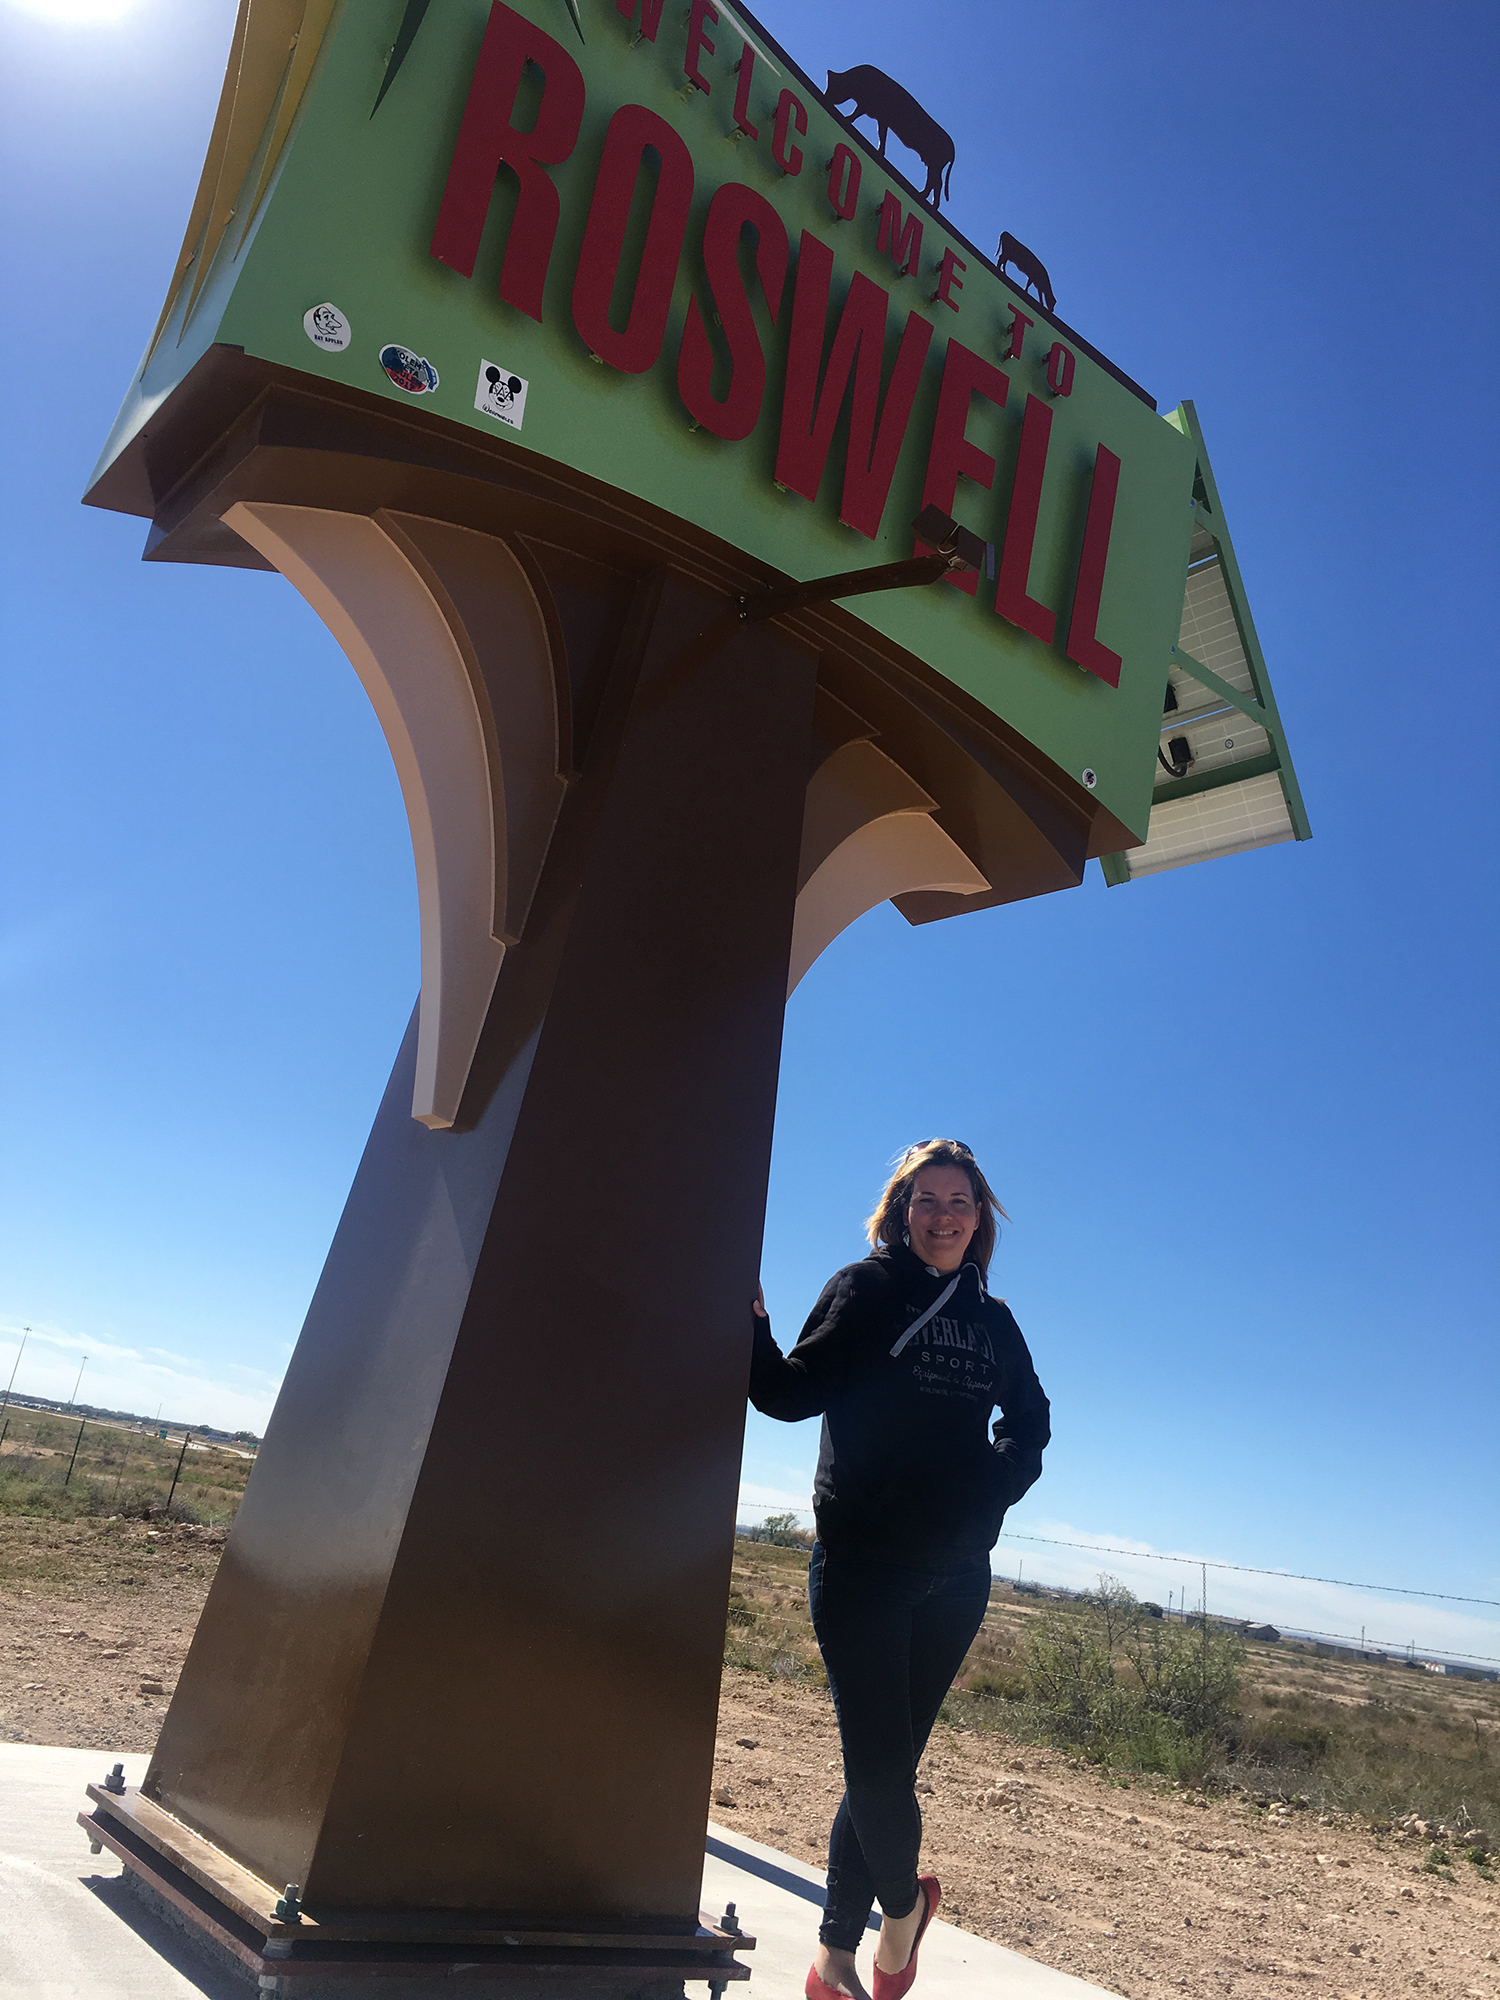 7 Fun Alien-Themed Things to Do in Roswell, New Mexico